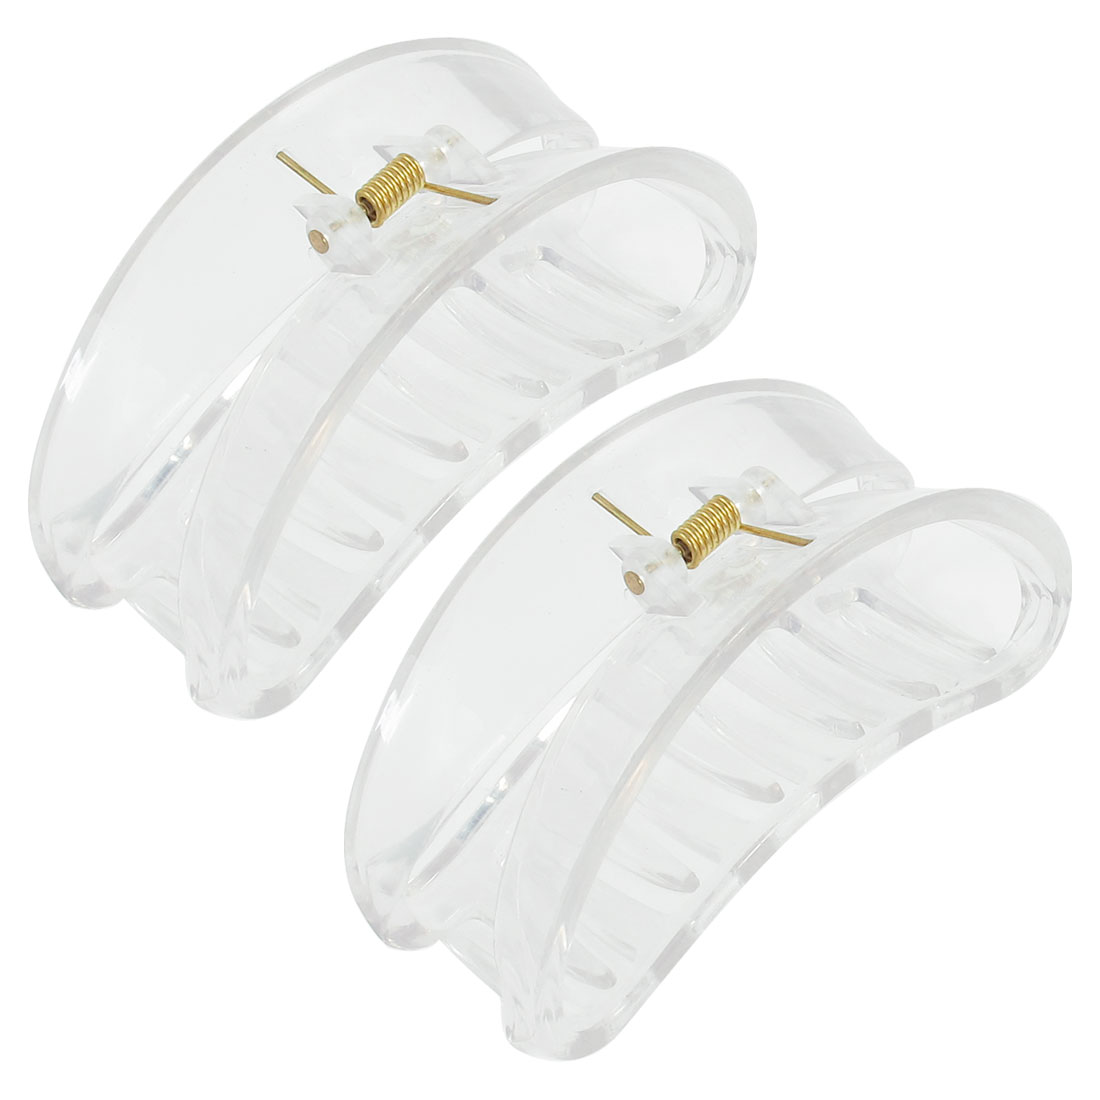 2 Pcs Clear Arch Design 6 Row Teeth Plastic Hair Claw Clamp Clip for Women